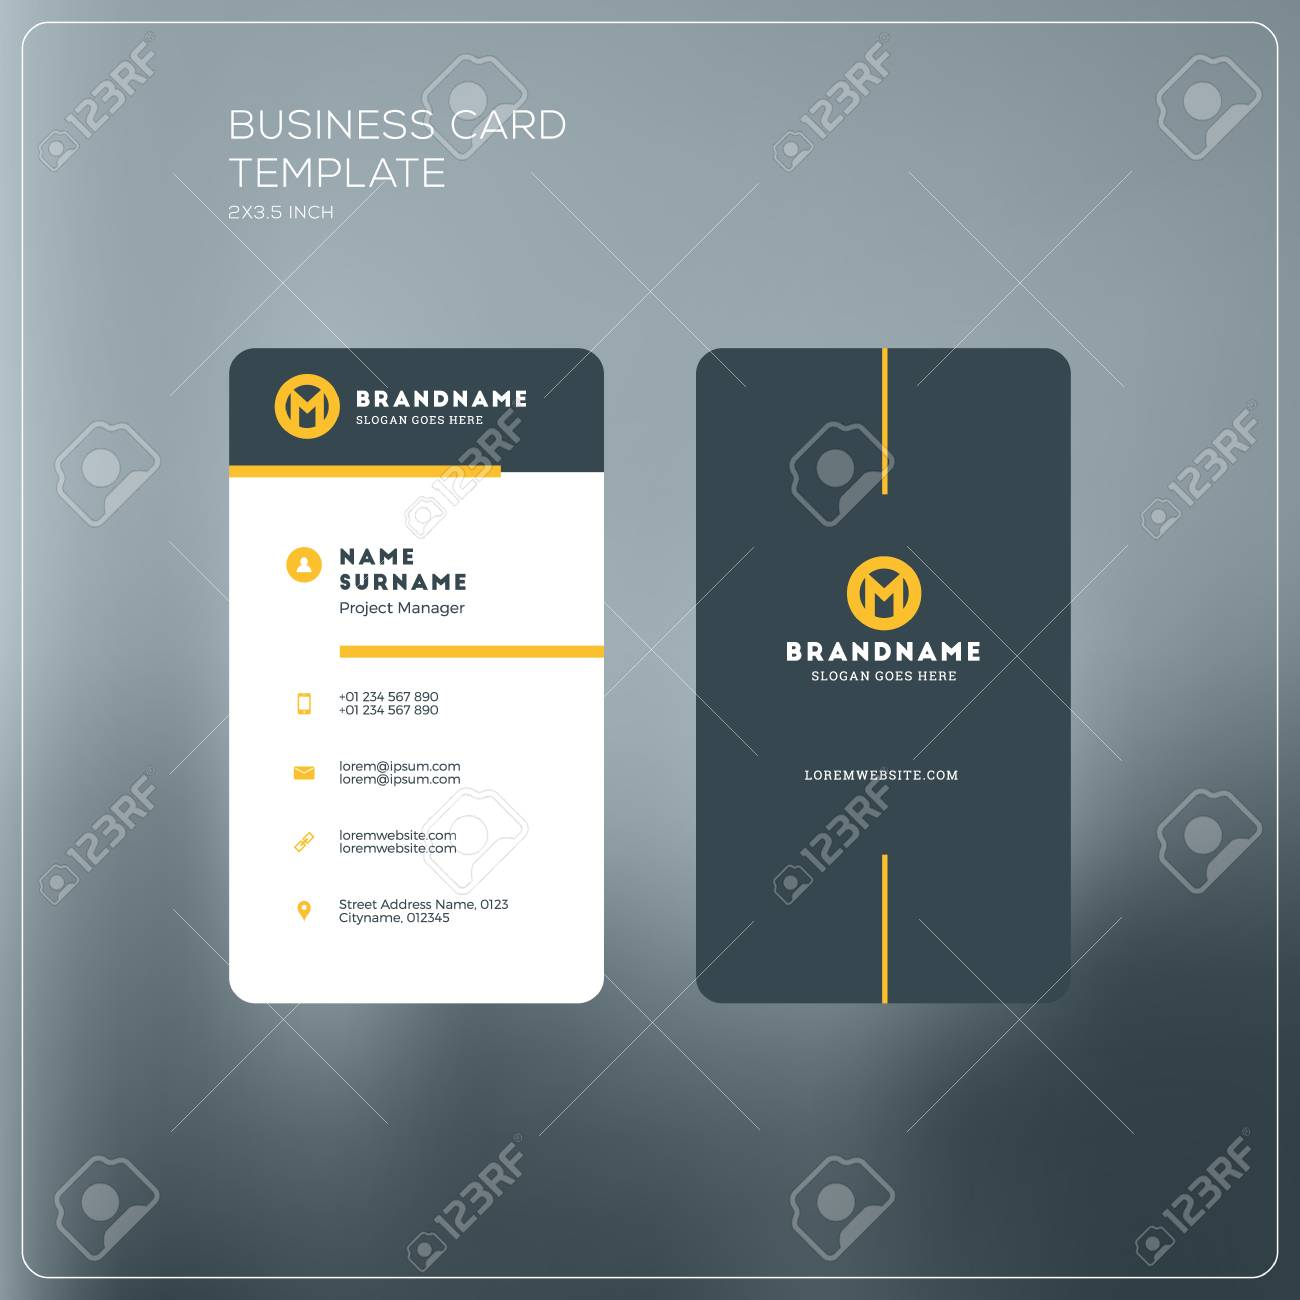 Vertical business card print template personal business card vector vertical business card print template personal business card with company logo black and yellow colors clean flat design vector illustration accmission Images